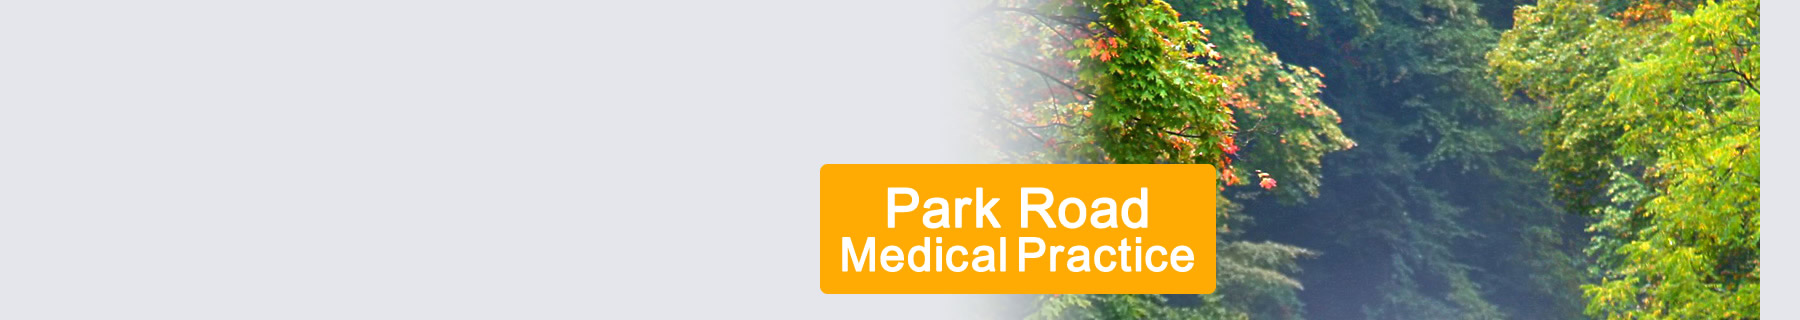 Park Road Medical Practice needed efficient communications across two sites so staff could be contacted at either branch